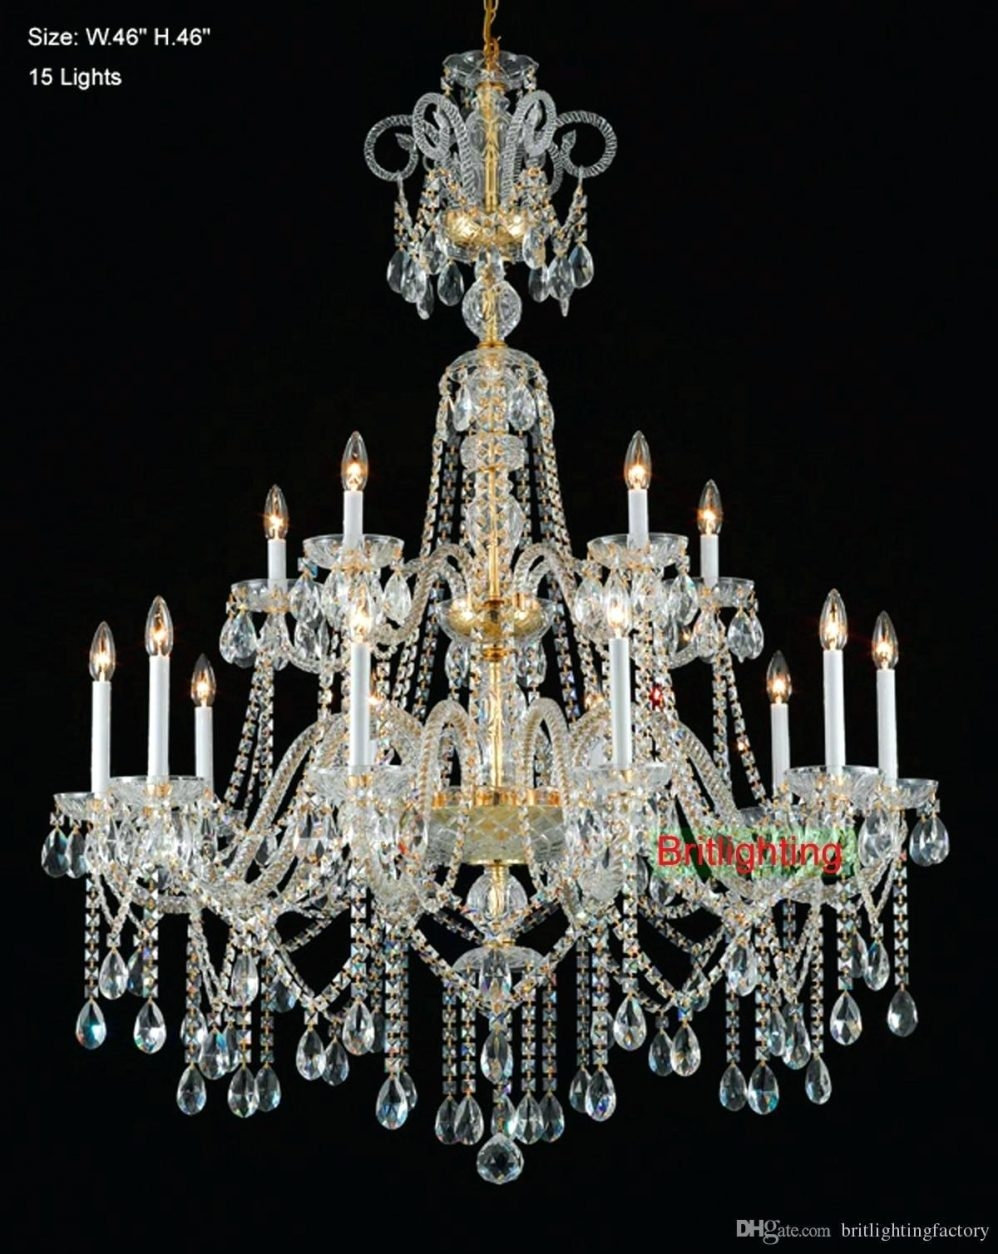 Antique Gold Crystal Chandelier G7 B12 614 3 Grey Crystal In Grey Crystal Chandelier (Image 1 of 15)